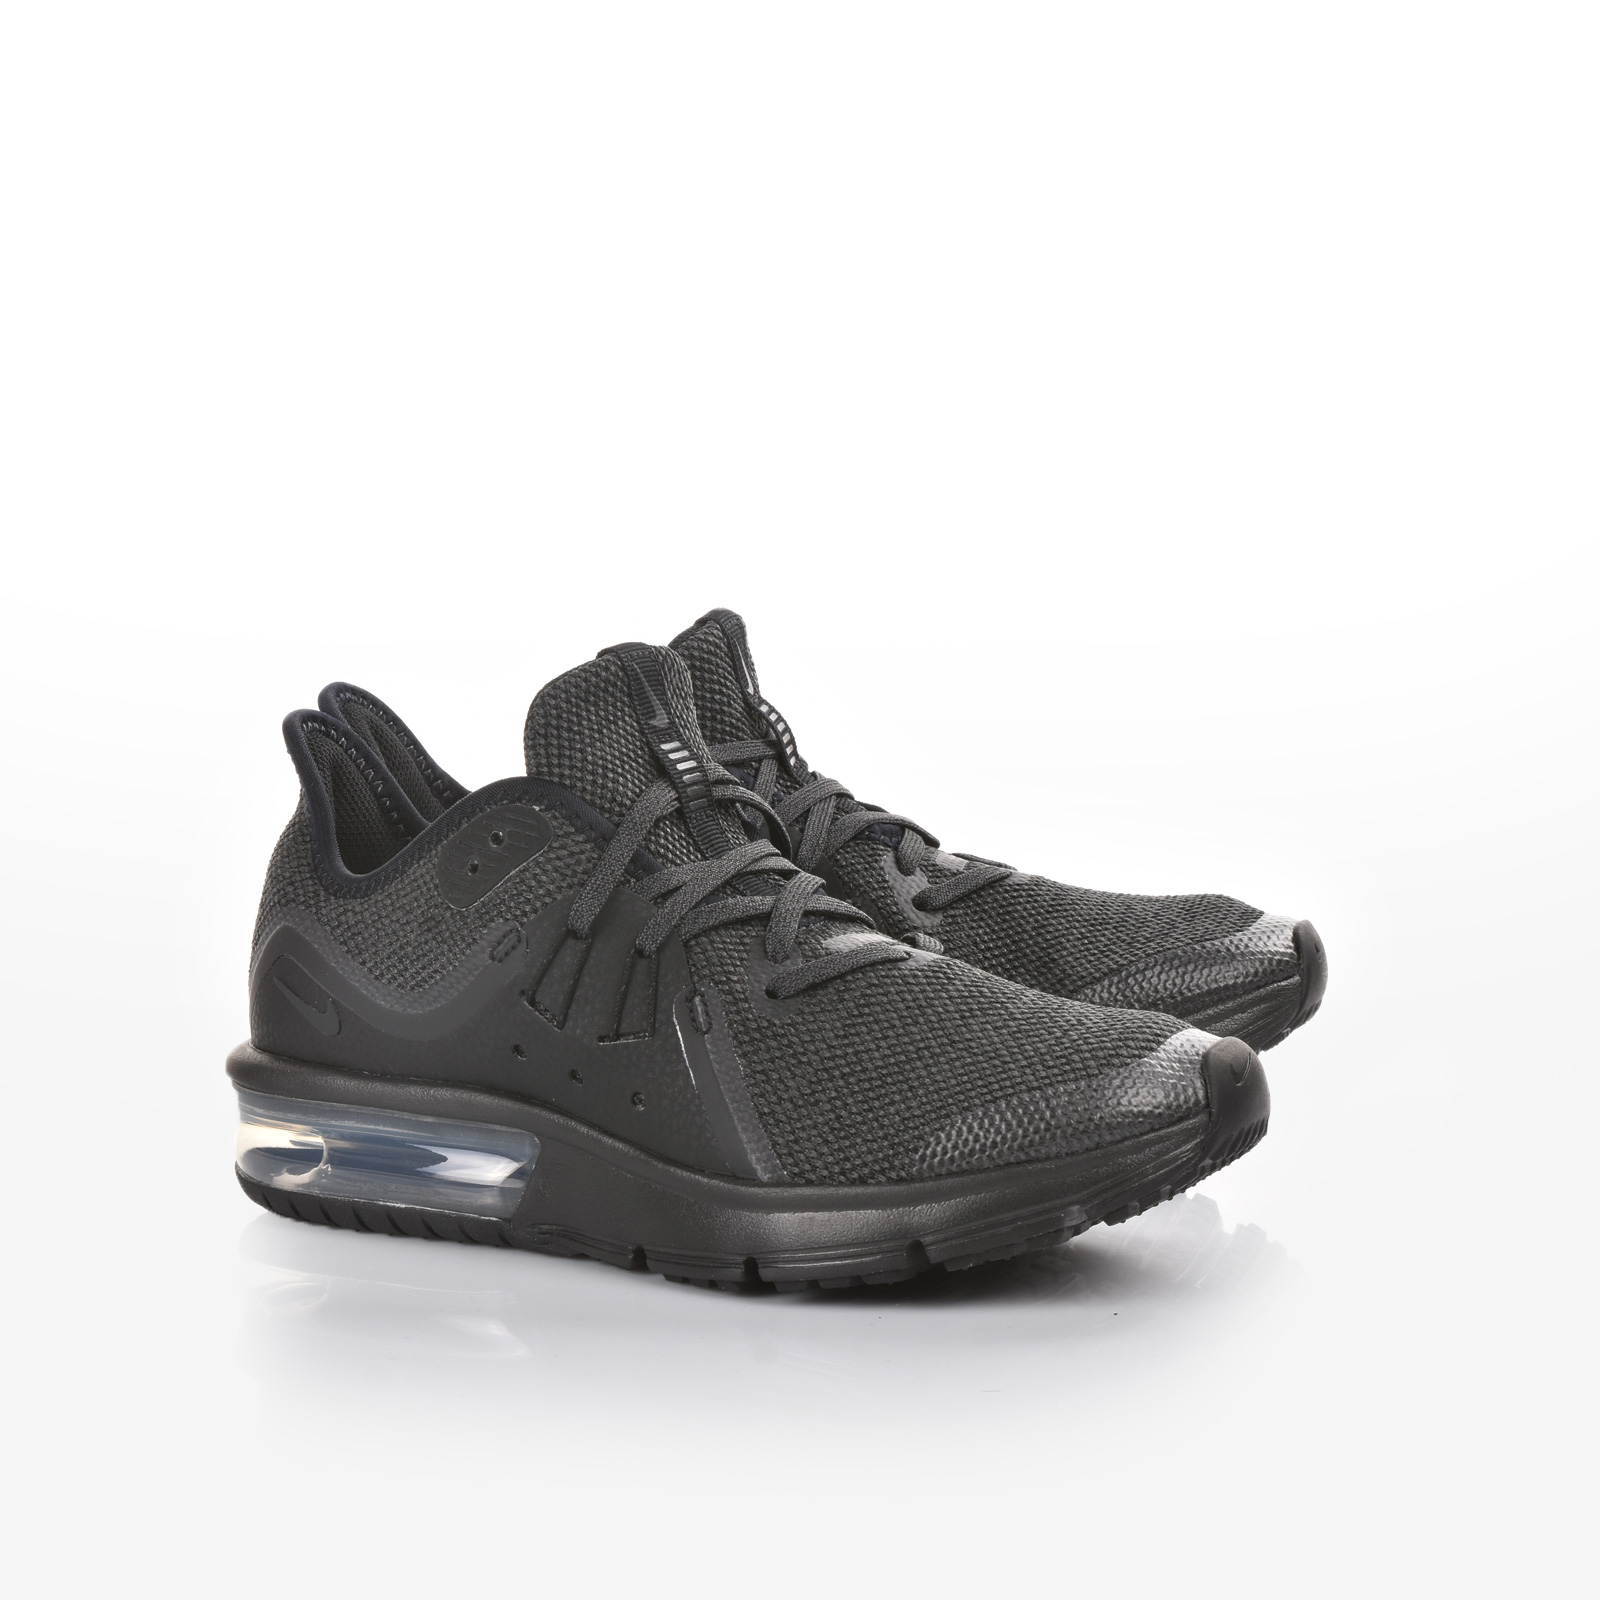 f1317fdc2fc Nike Air Max Sequent 3 GS 922884 006 | Αθλητικά Παιδικά Παπούτσια ...